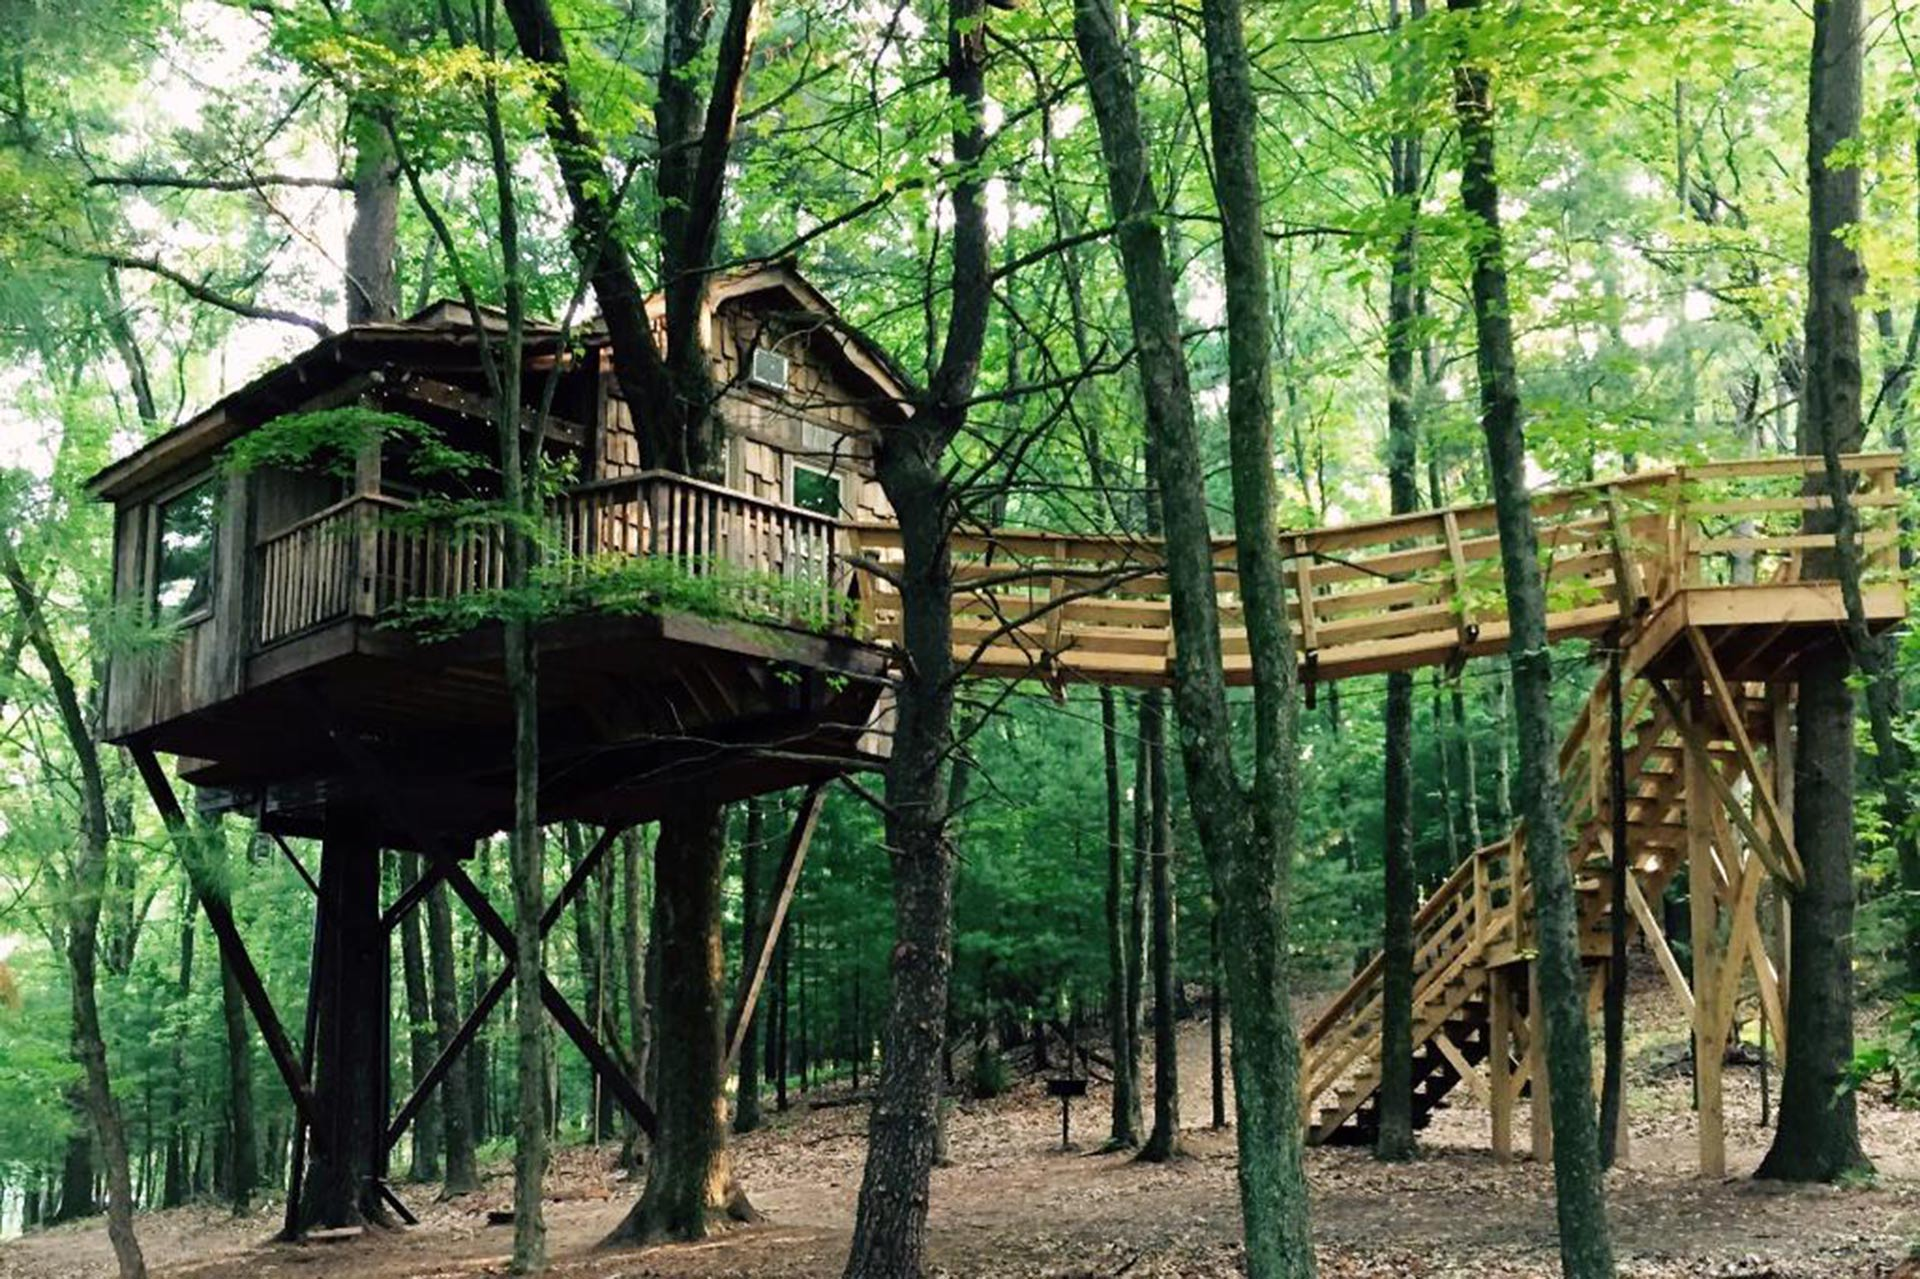 The Mohicans Treehouses in Glenmont, OH; Courtesy of TripAdvisor Traveler/TravelinStyle30